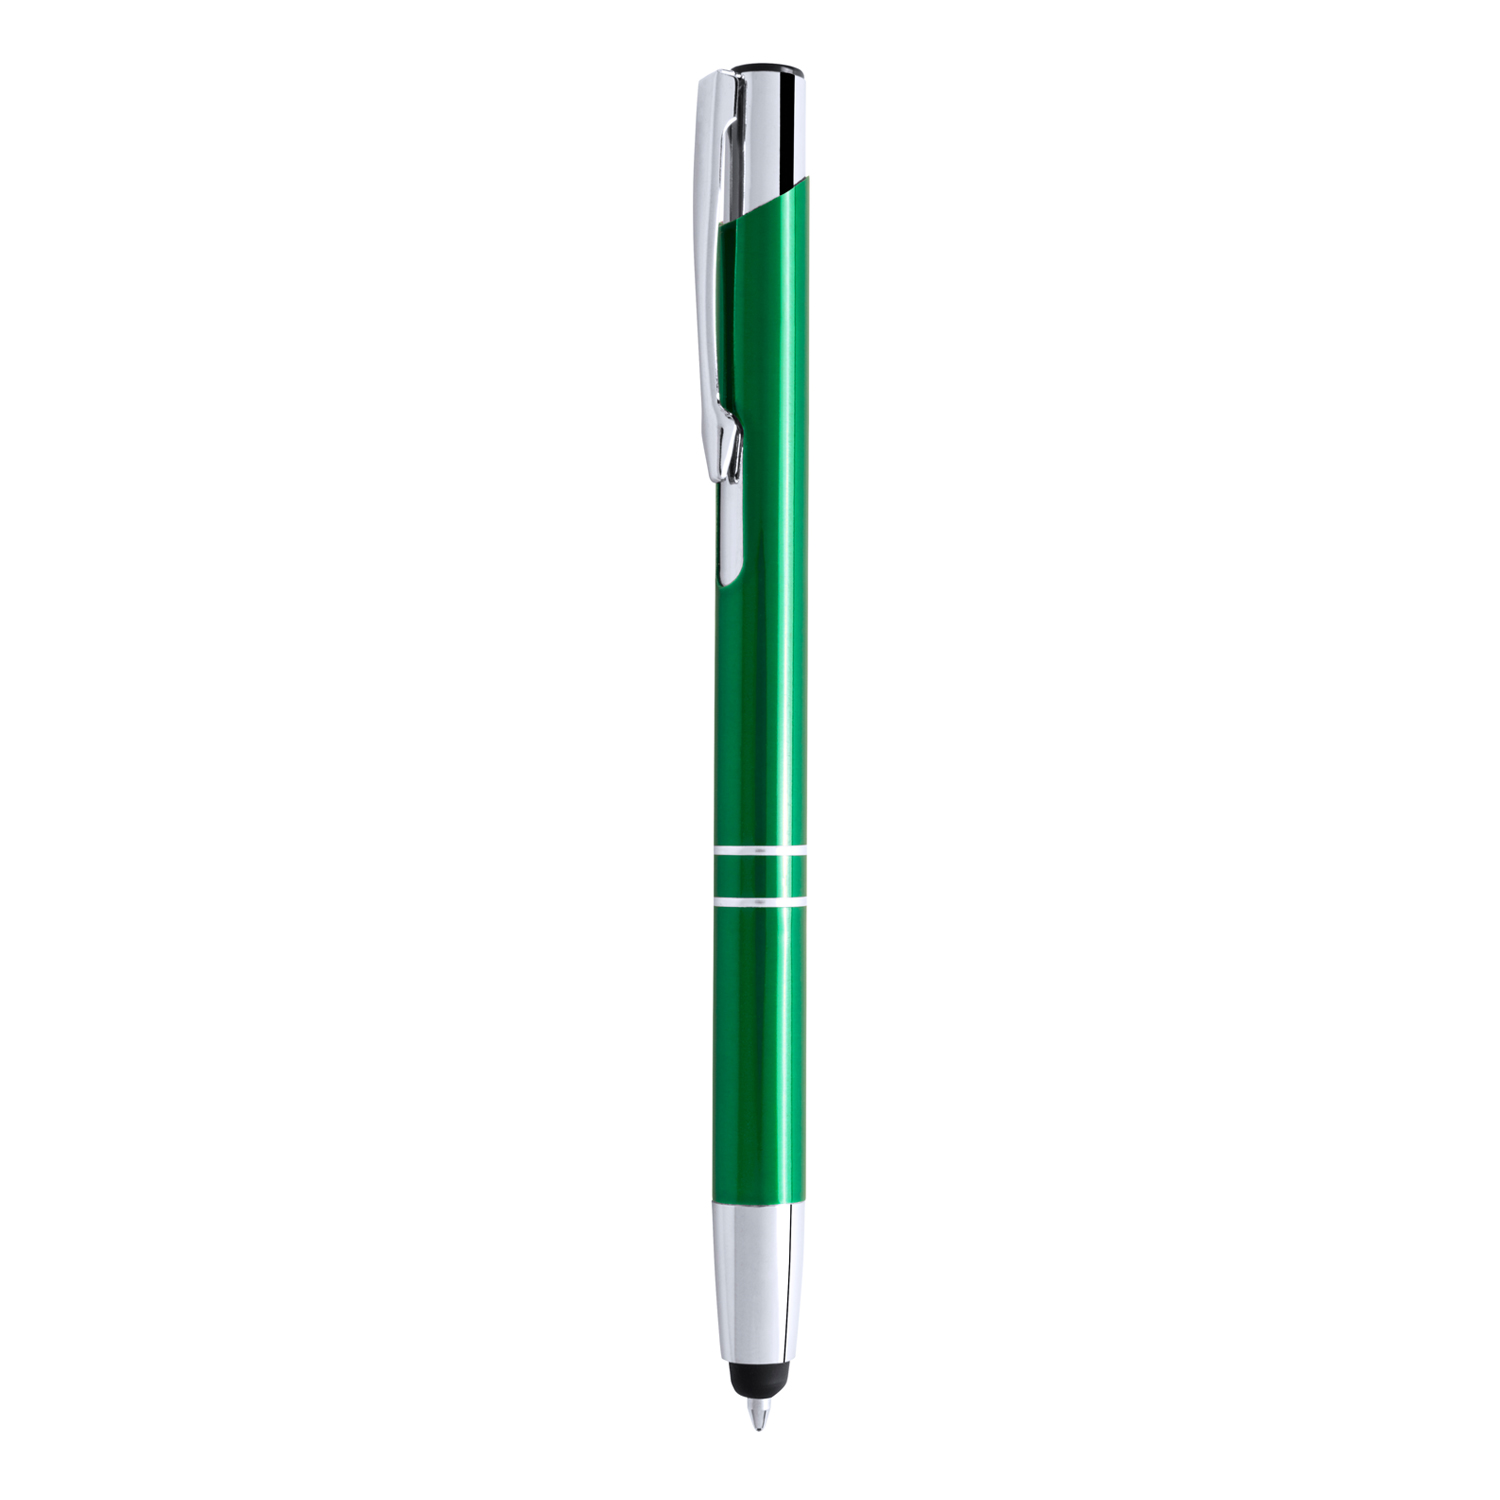 Ball Pen 058 (Aluminium ball pen) - hmi22058-09 (Green)